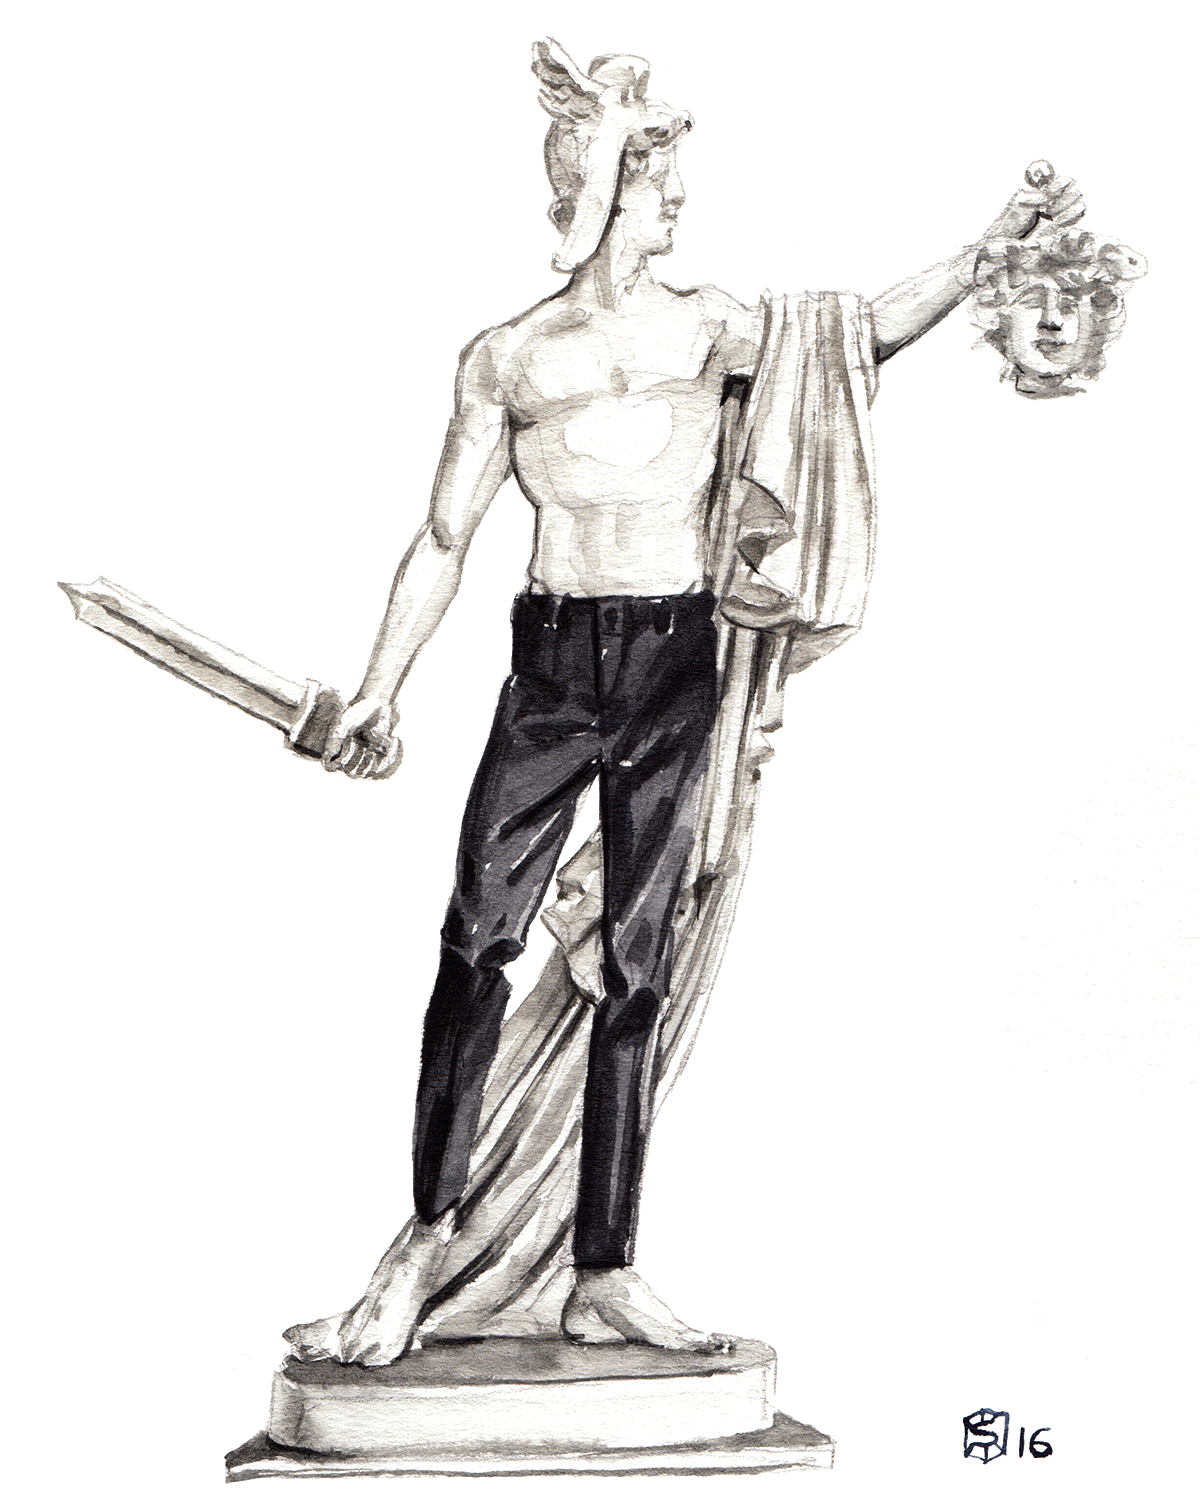 Menswear Illustration of a sculpture of Perseus holding the head of Medusa and wearing an Express trousers